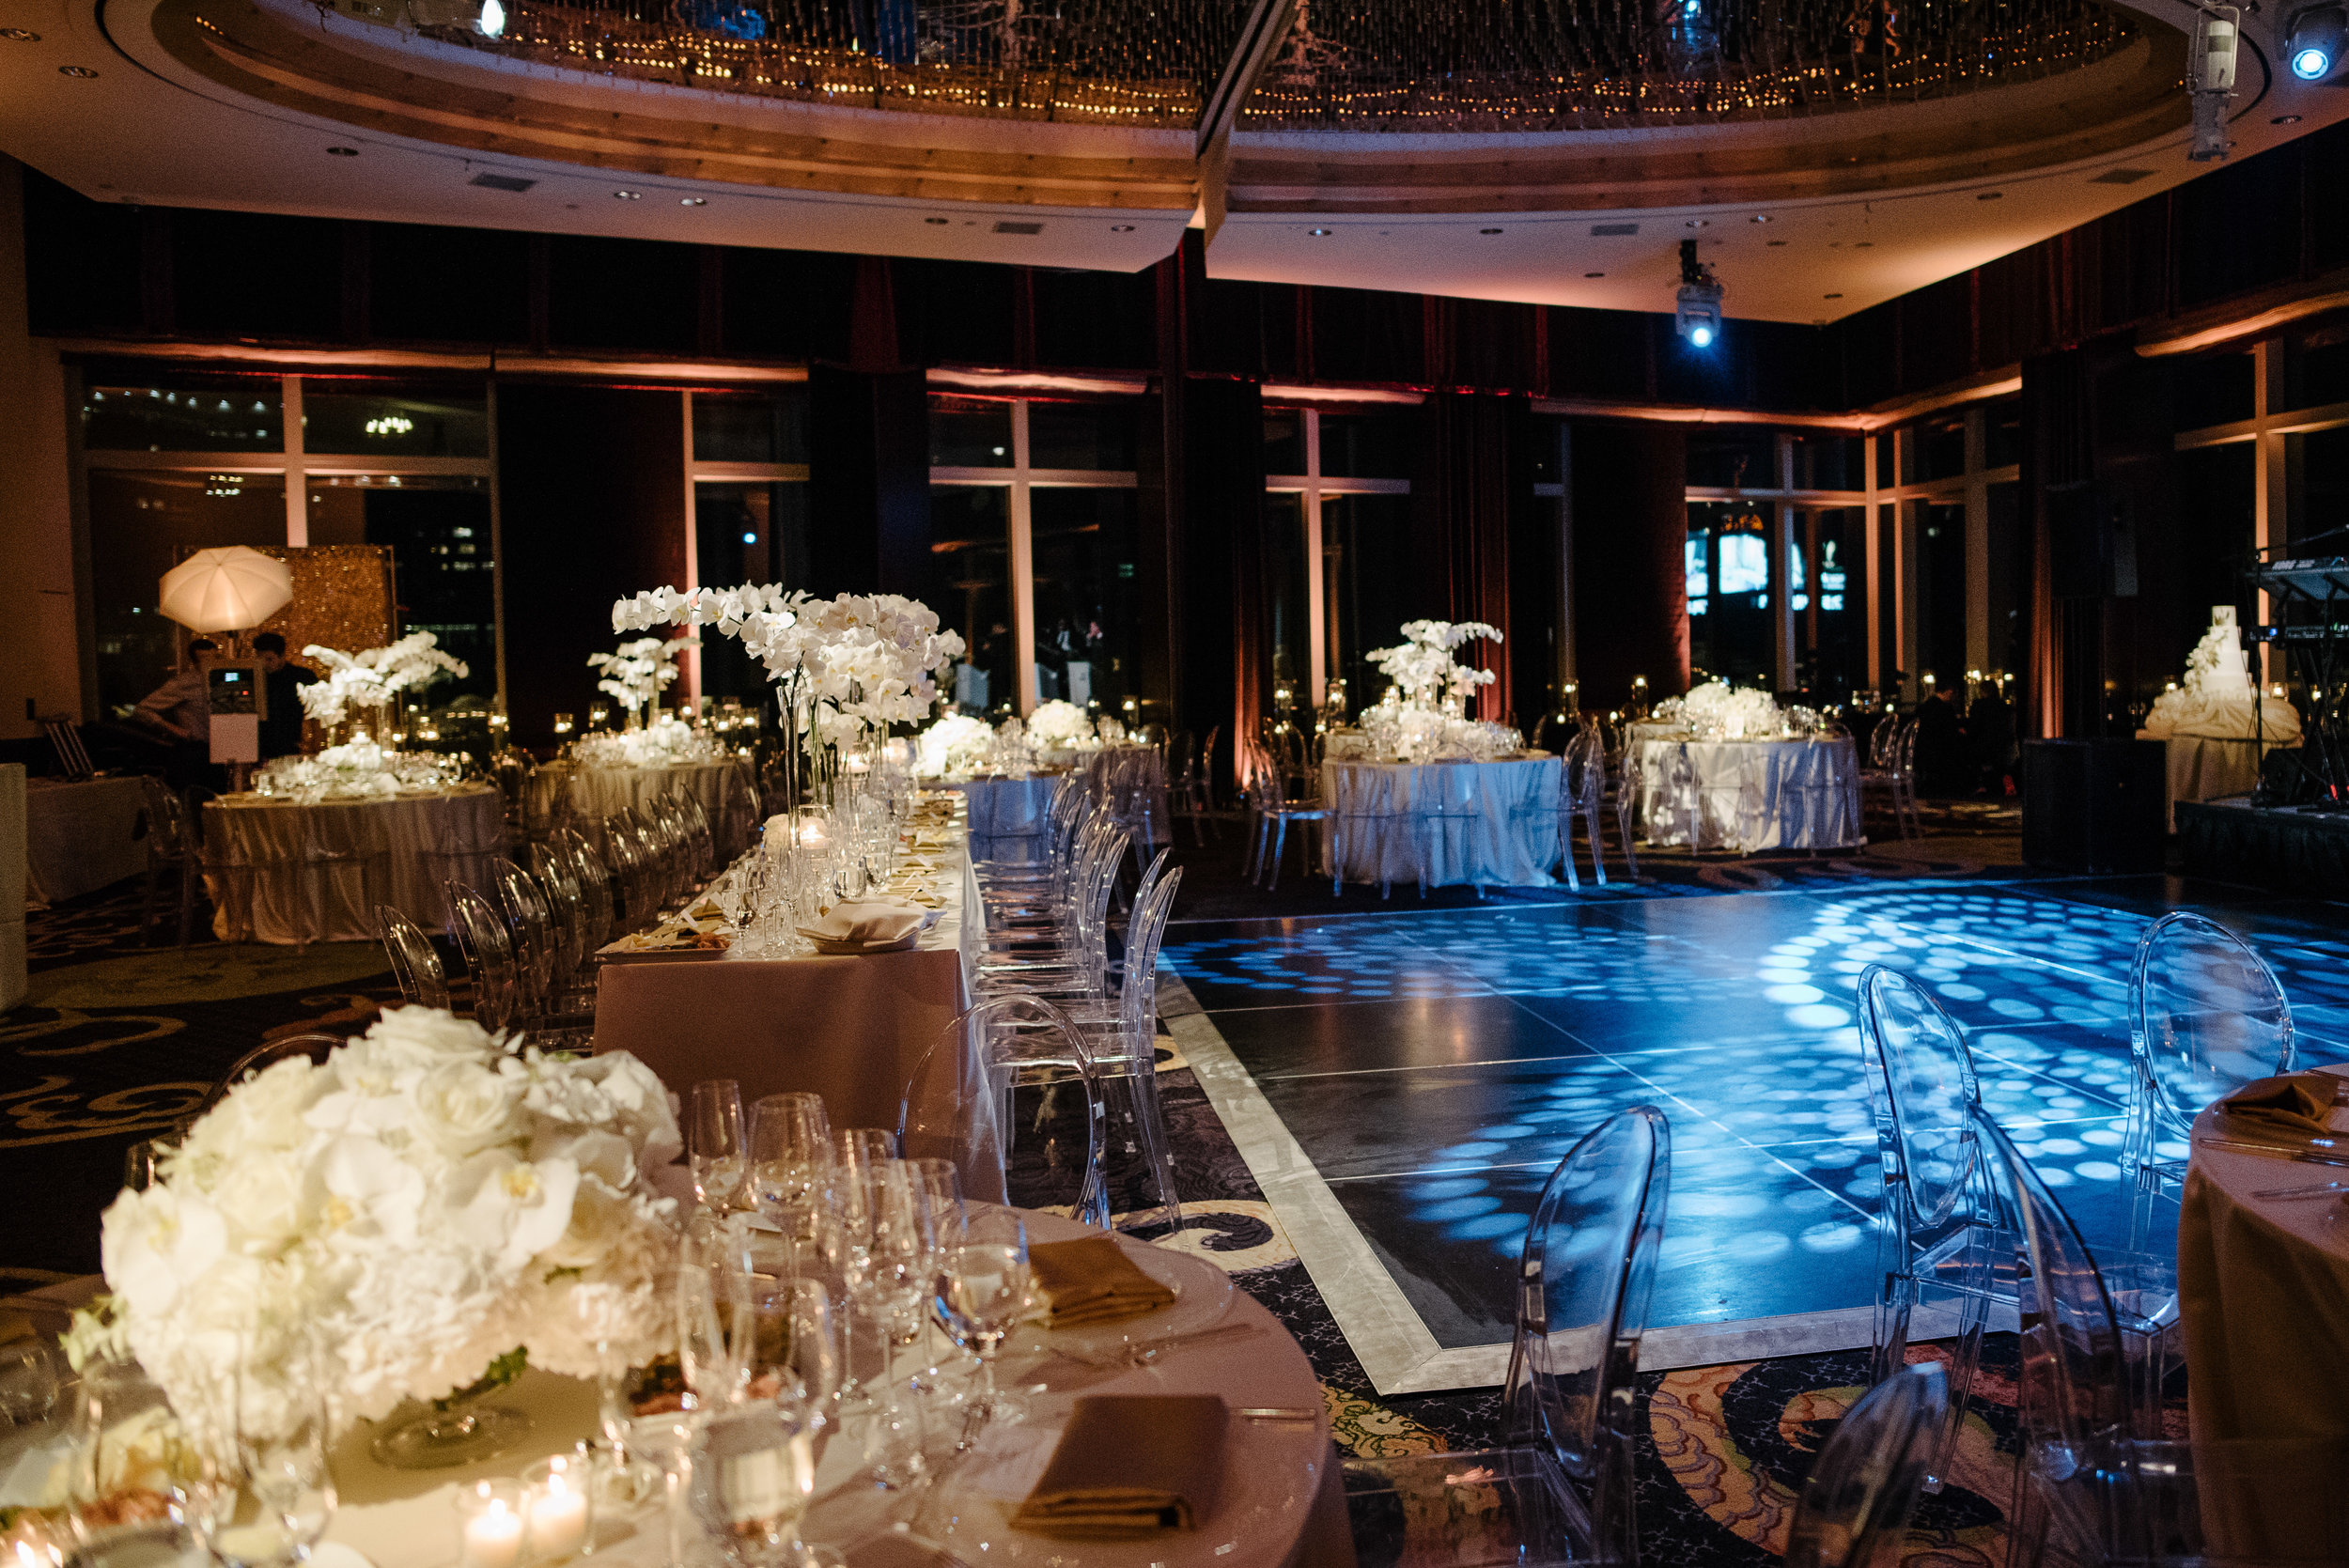 New-York-Wedding-Mandarin-Oriental-Andrea-Freeman-Events-17.jpg